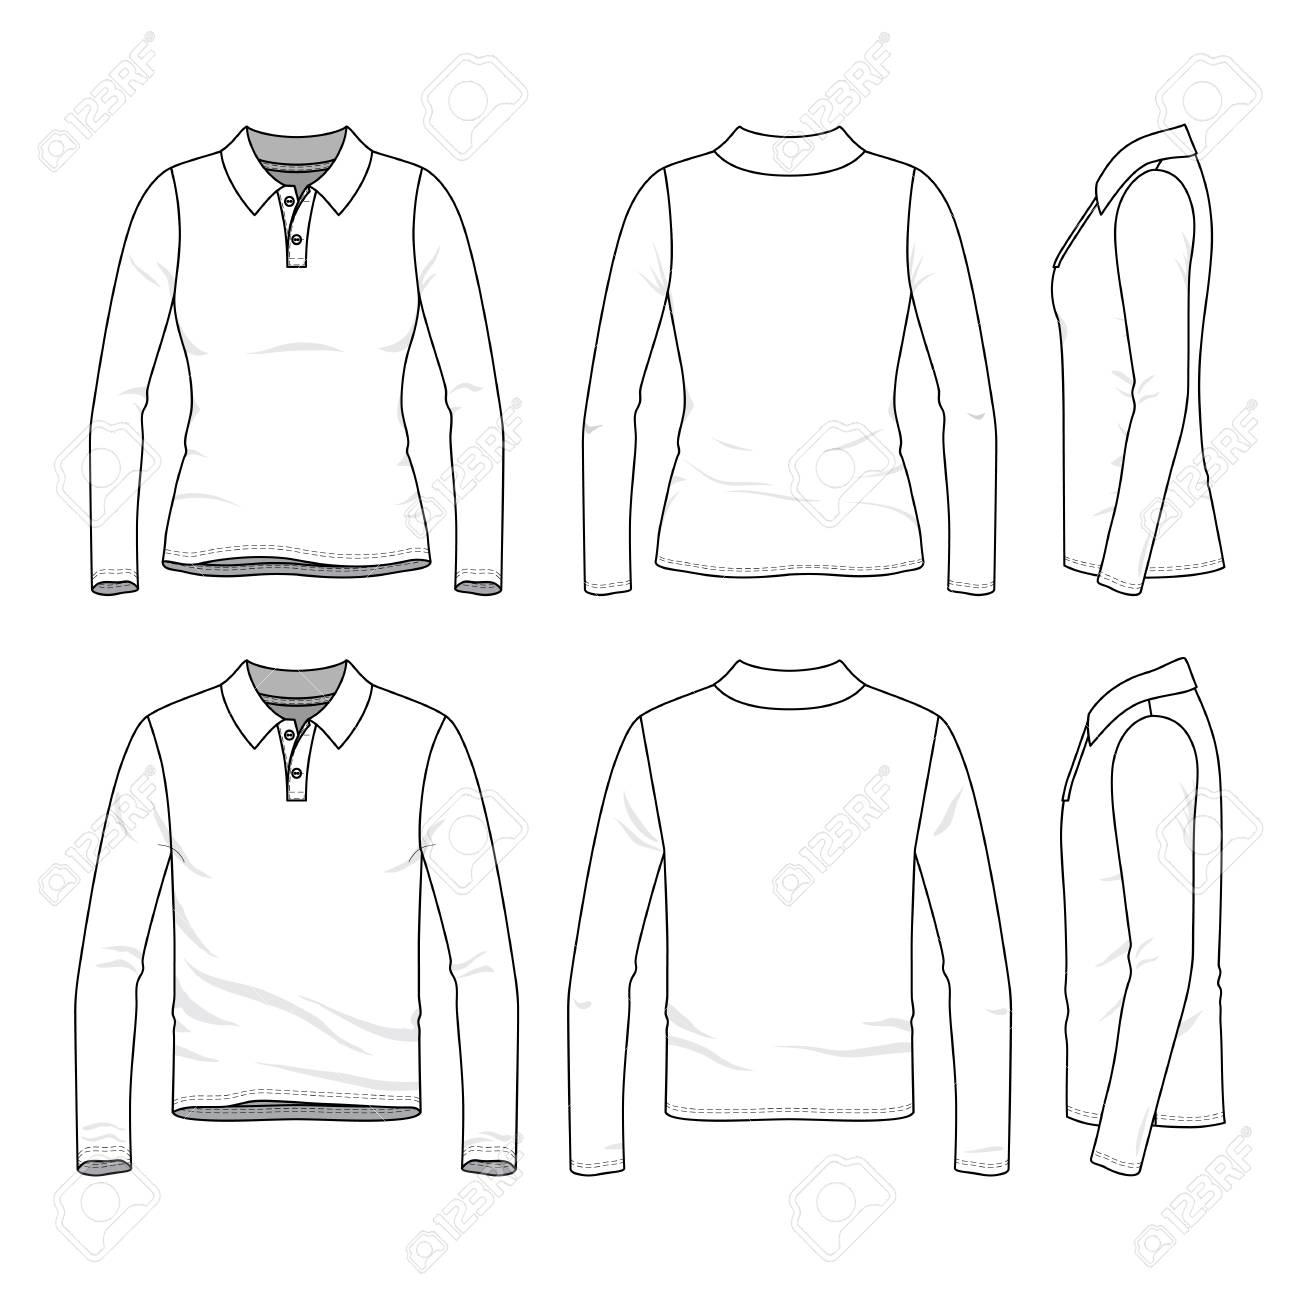 afce89fa6dd Front, back and side views of clothing set. Blank vector templates of male  and